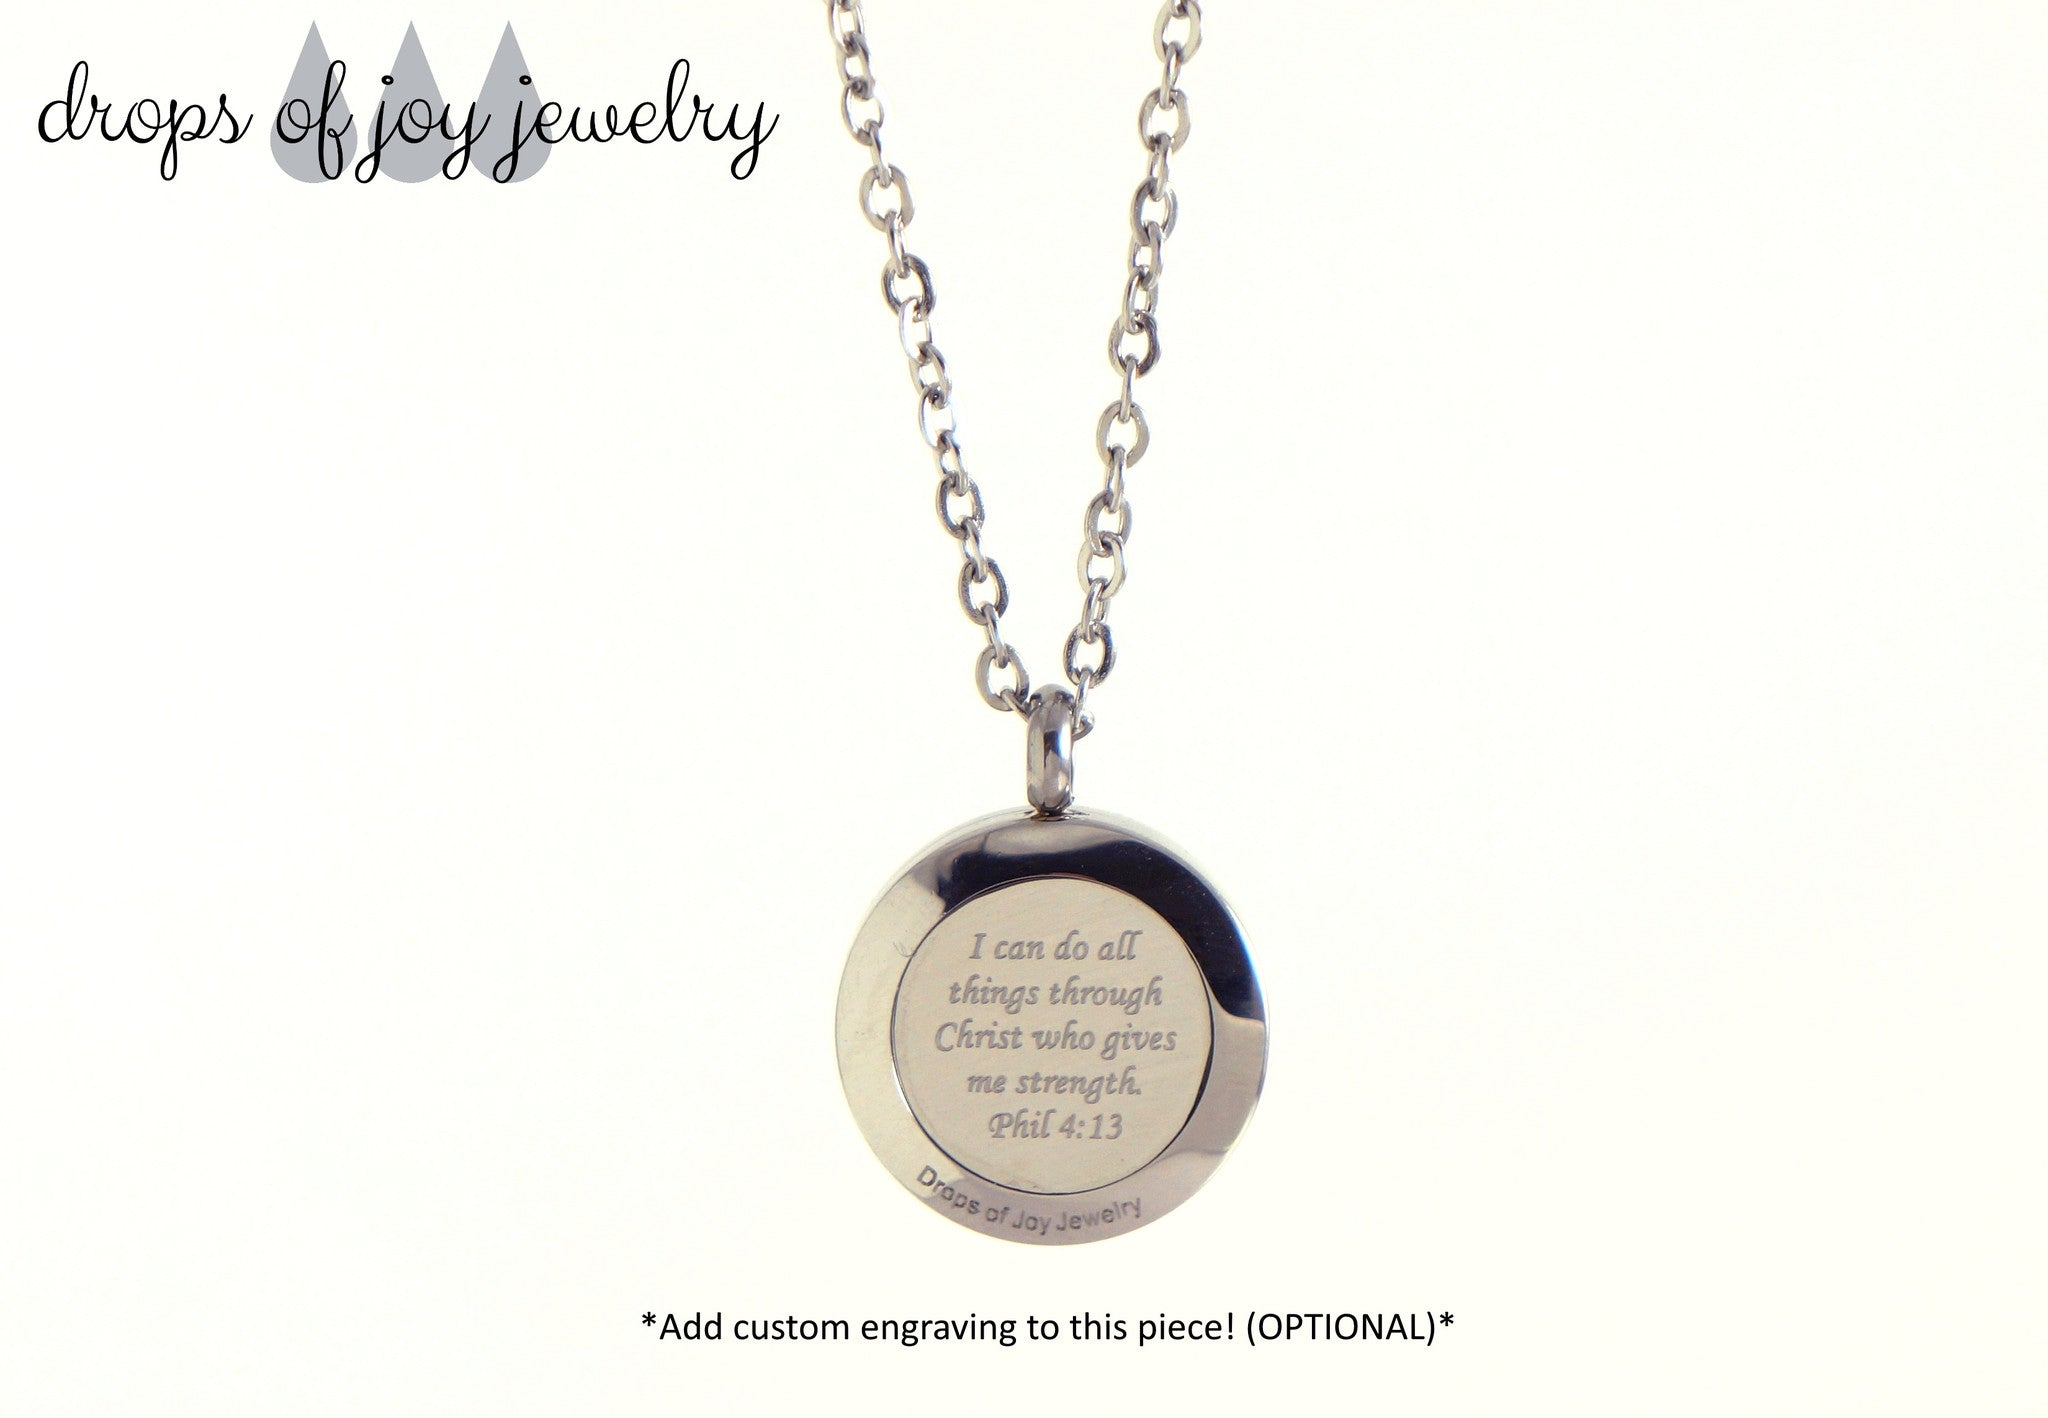 Engraved Diffuser Jewelry - Customized Essential Oil Jewelry